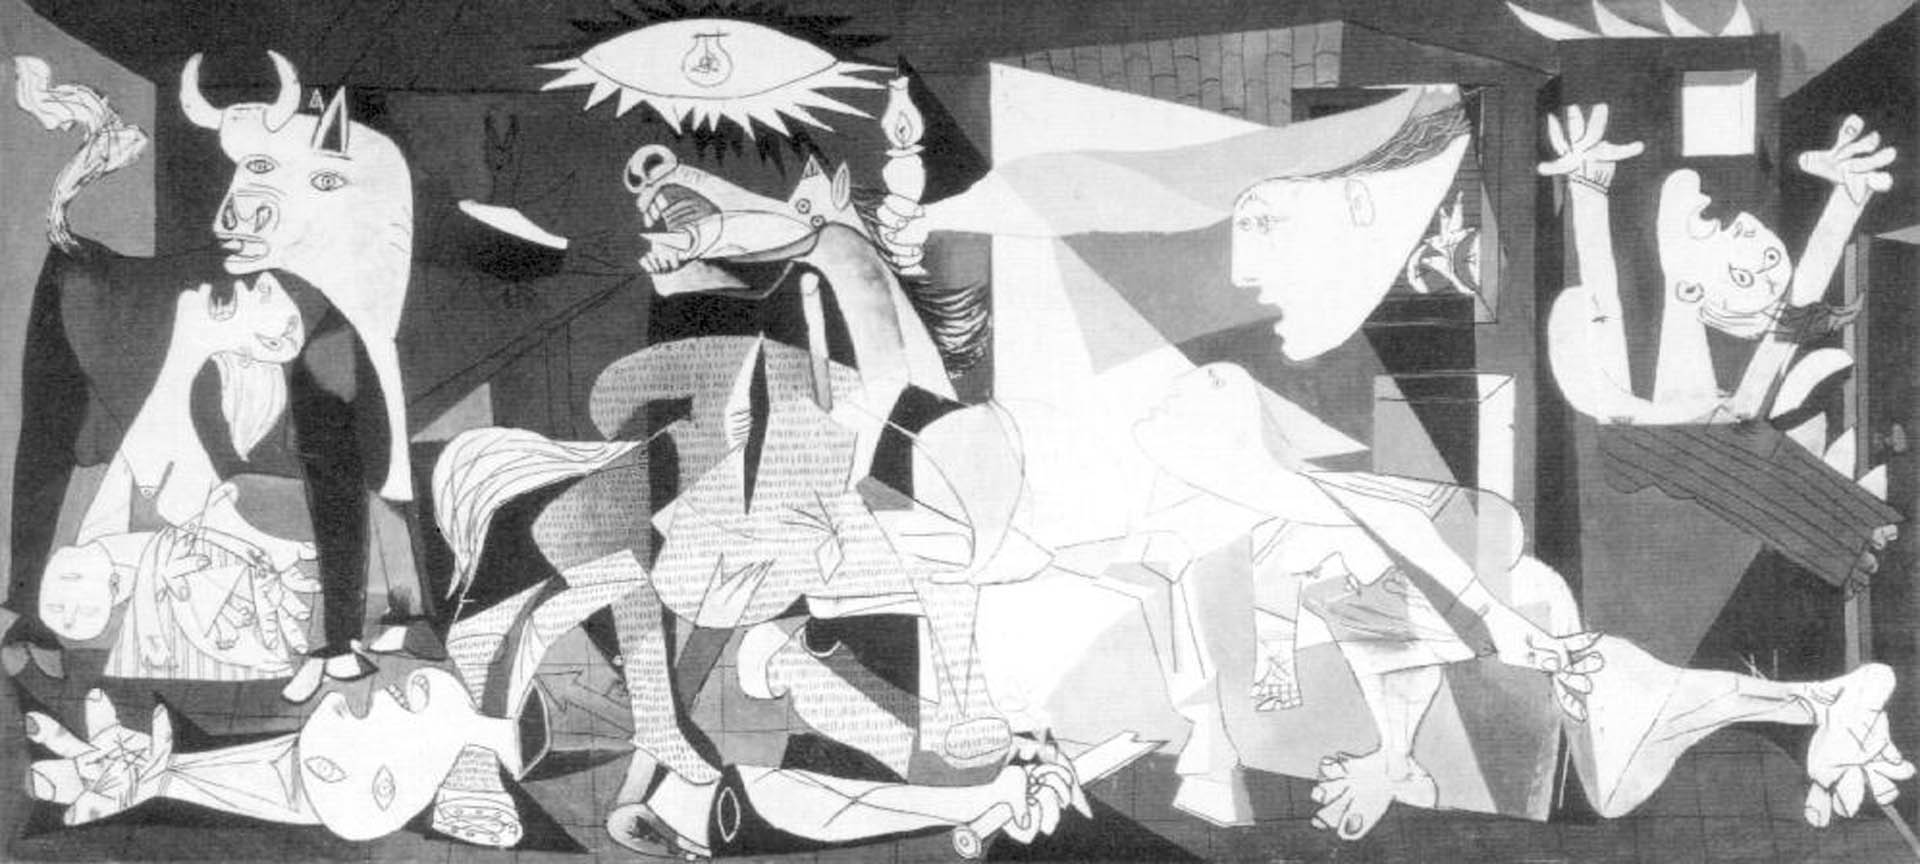 id 254864096596 guernica wallpaper by manics4real guernica wallpap 1920x864